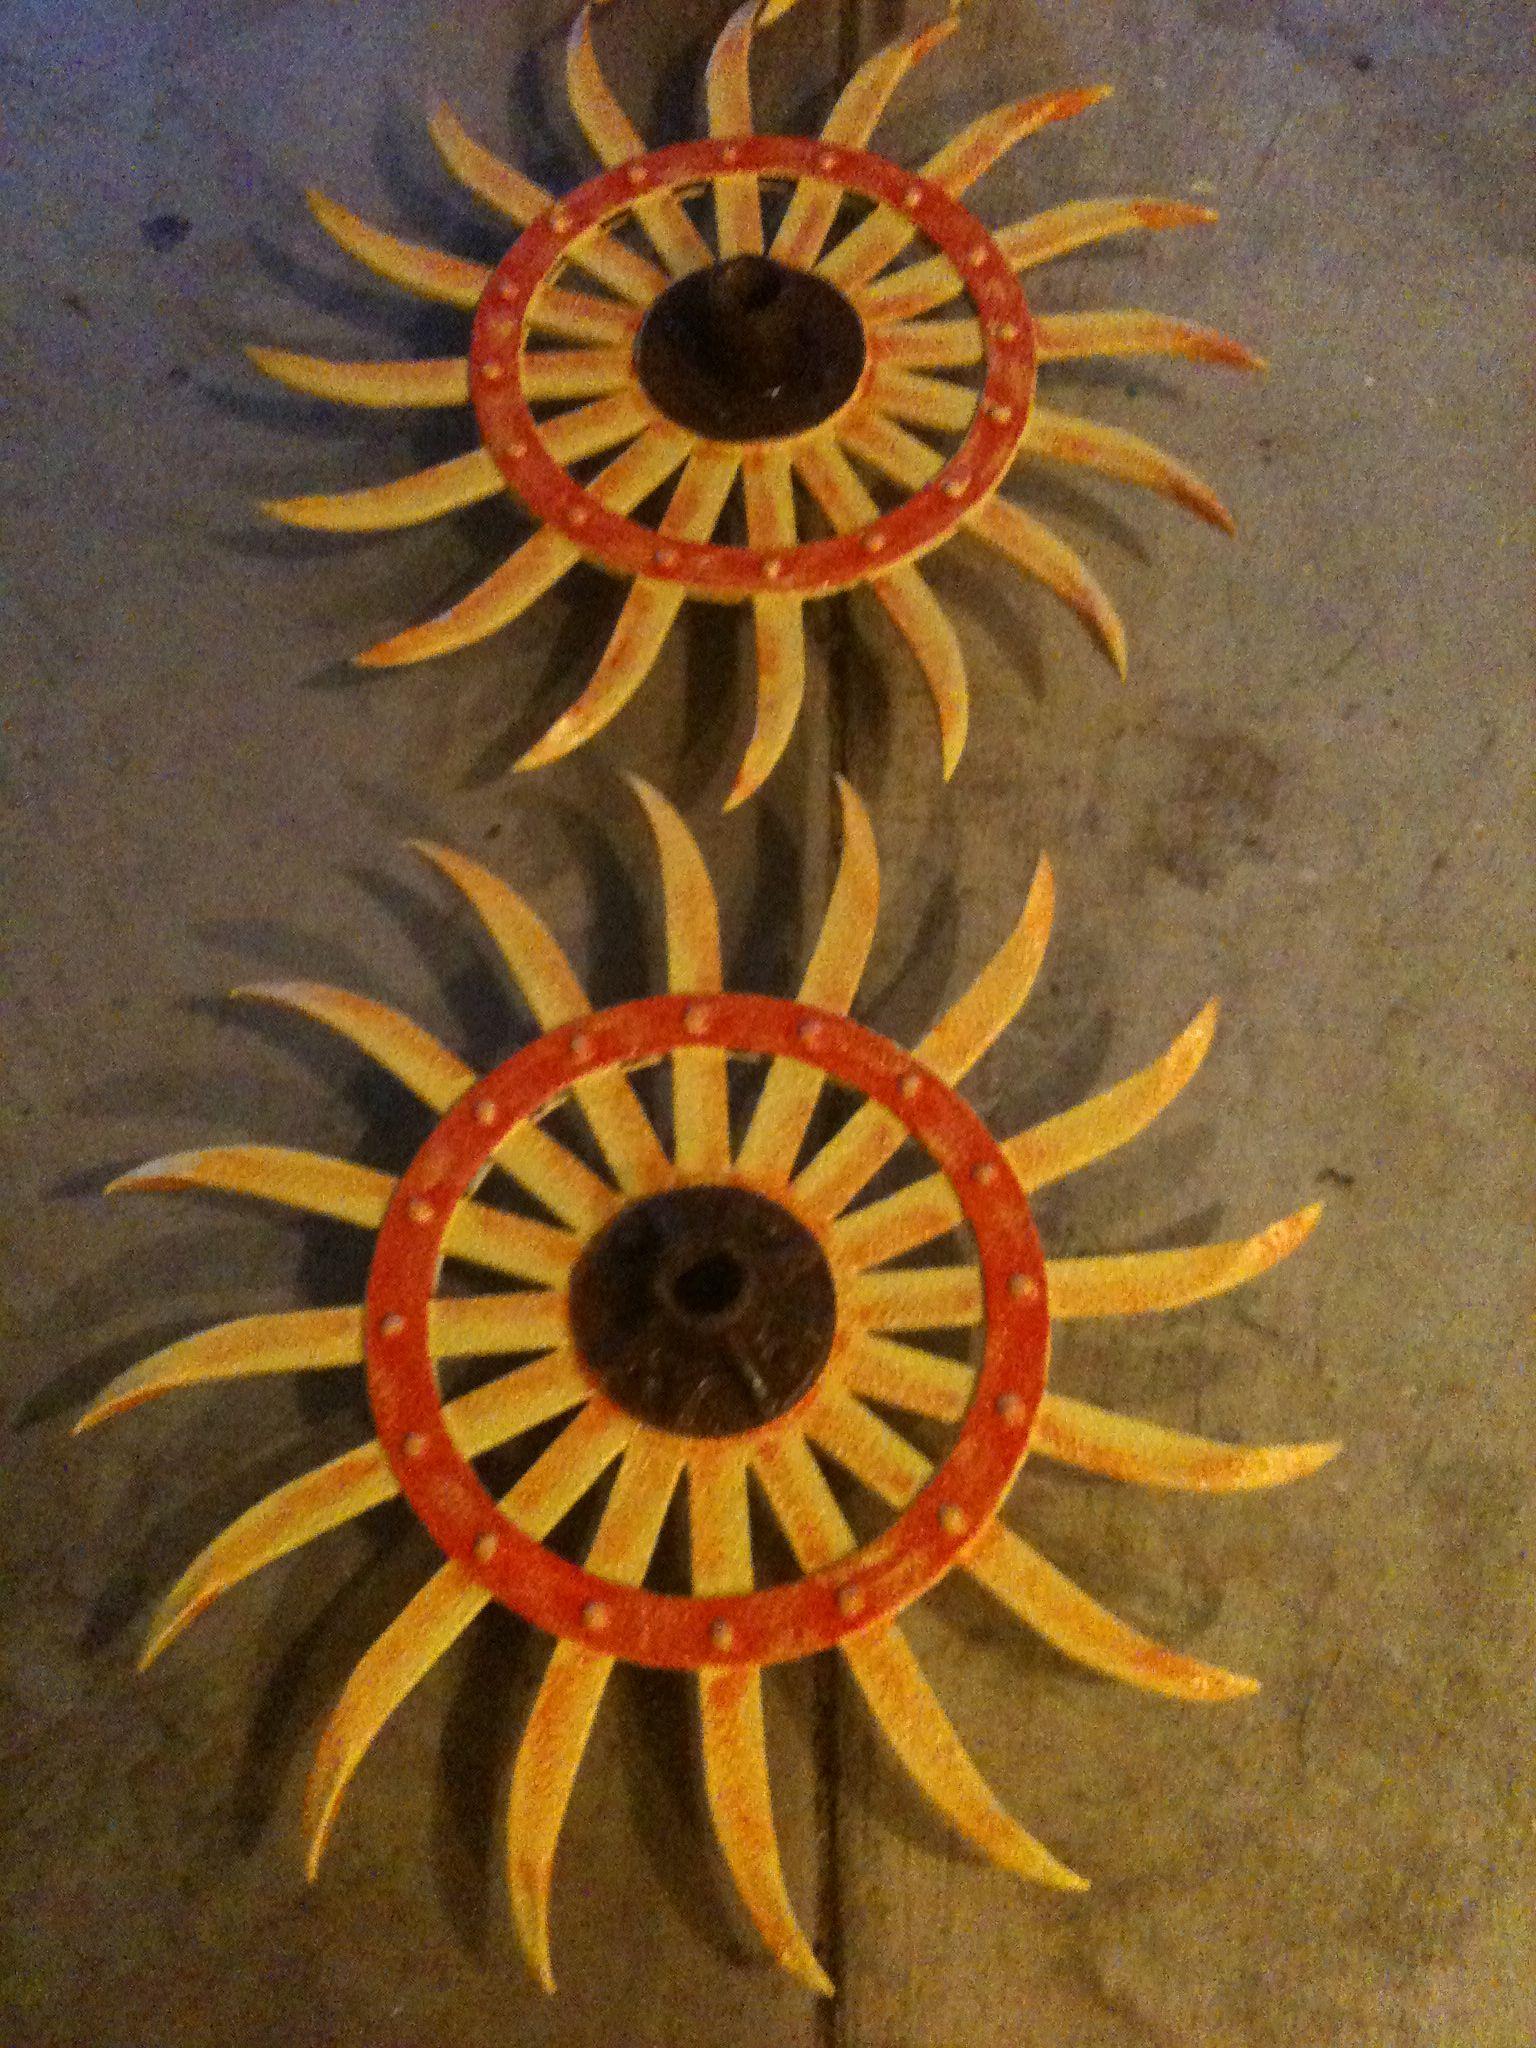 Sunflowers on a rotary hoe | Art | Pinterest | Hoe, Sunflowers and on